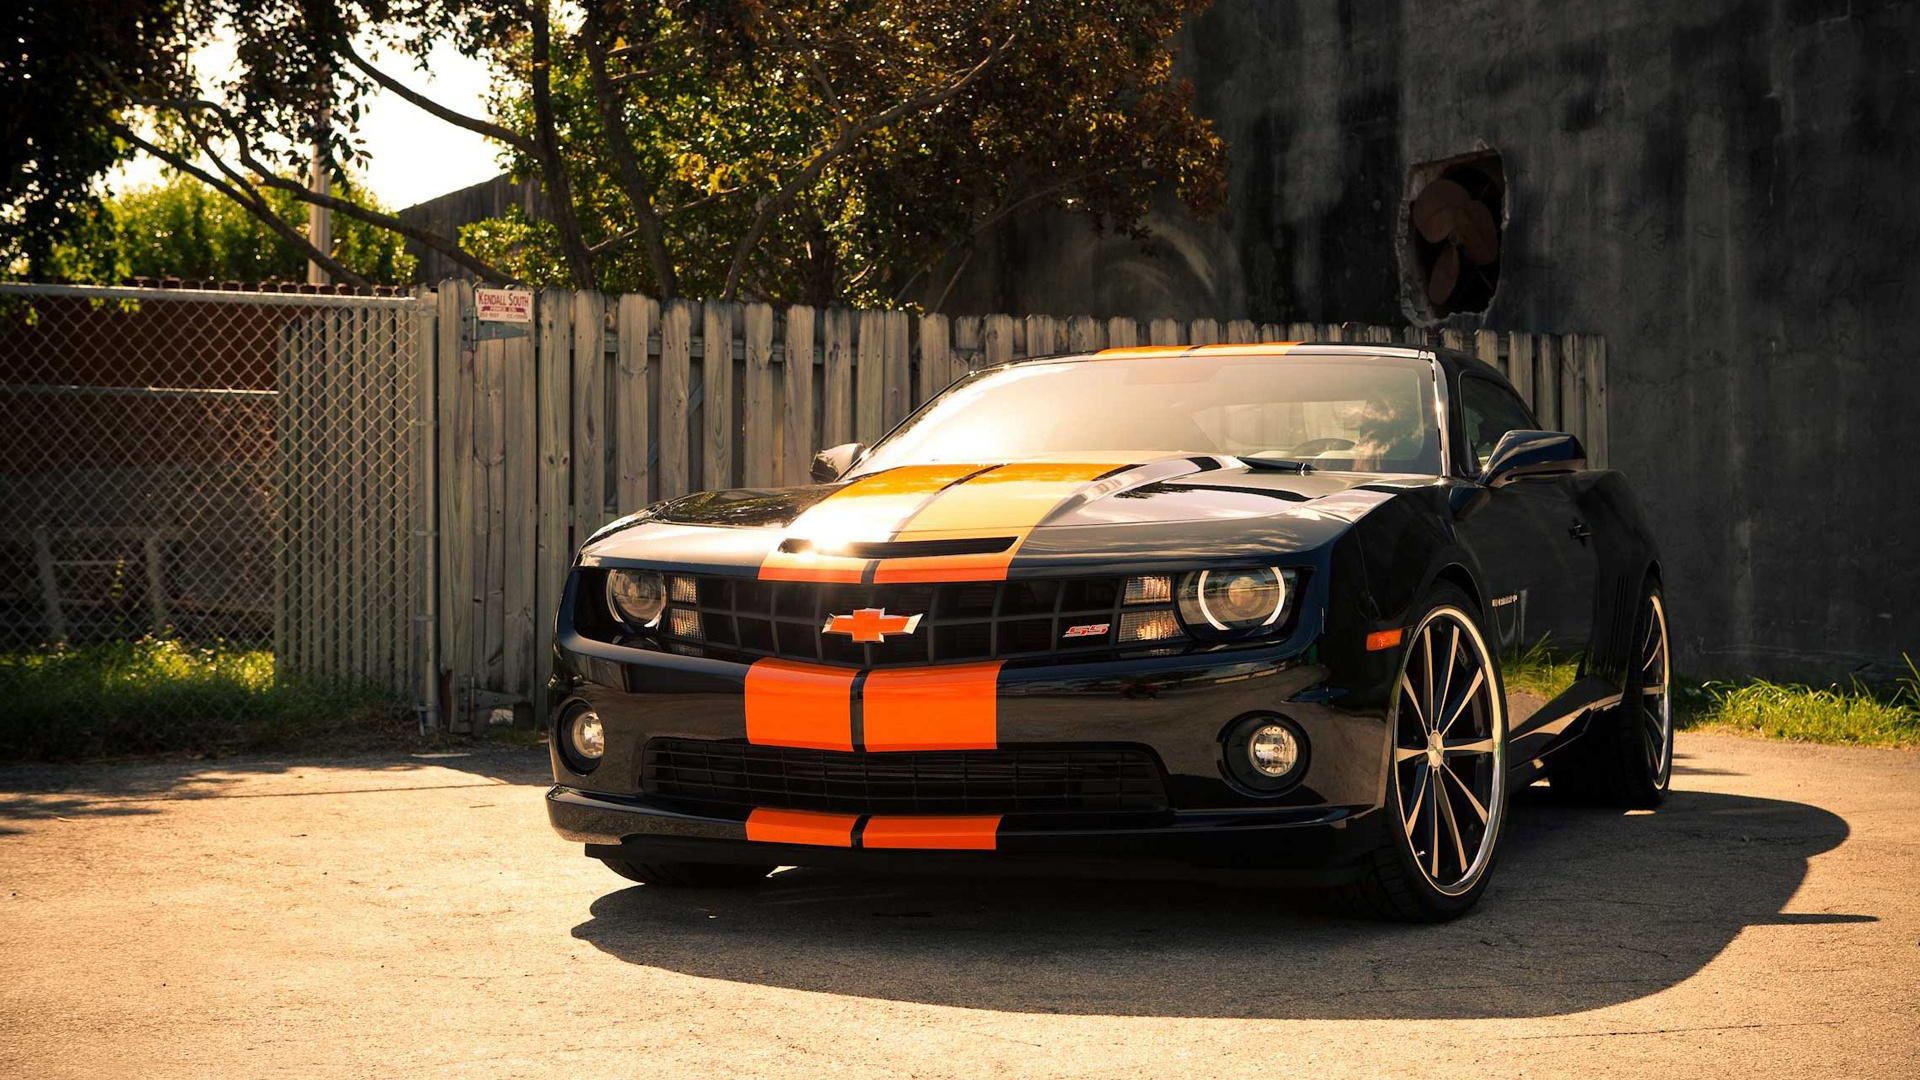 Chevrolet Camaro SS Car Wallpapers HD Wallpapers 1920x1080